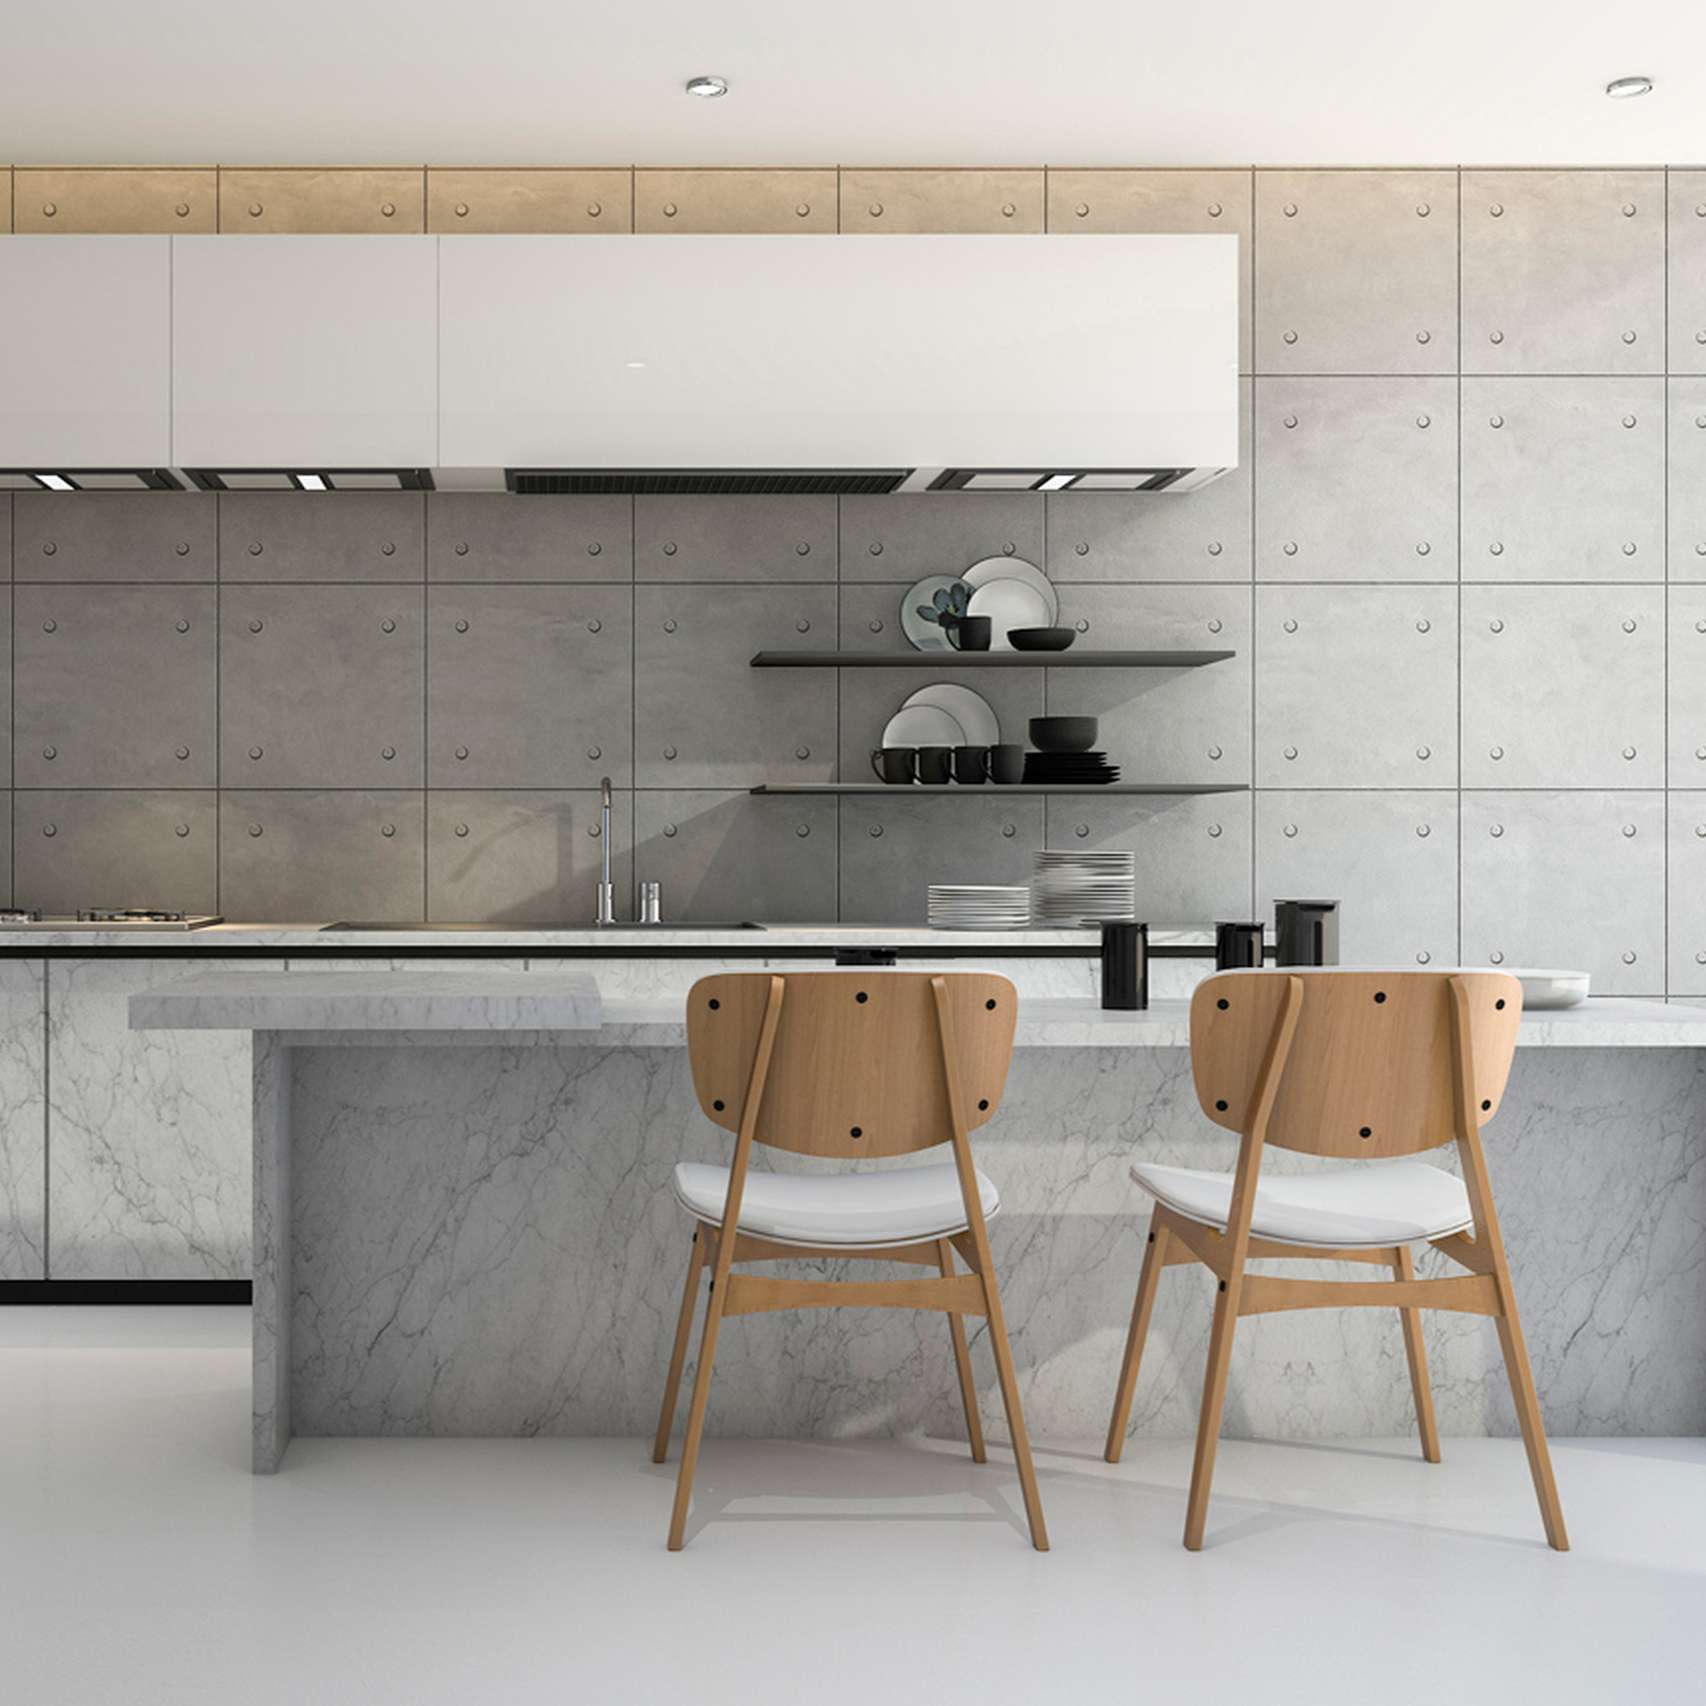 Concrete Optik coating by Ideal Work in a kitchen